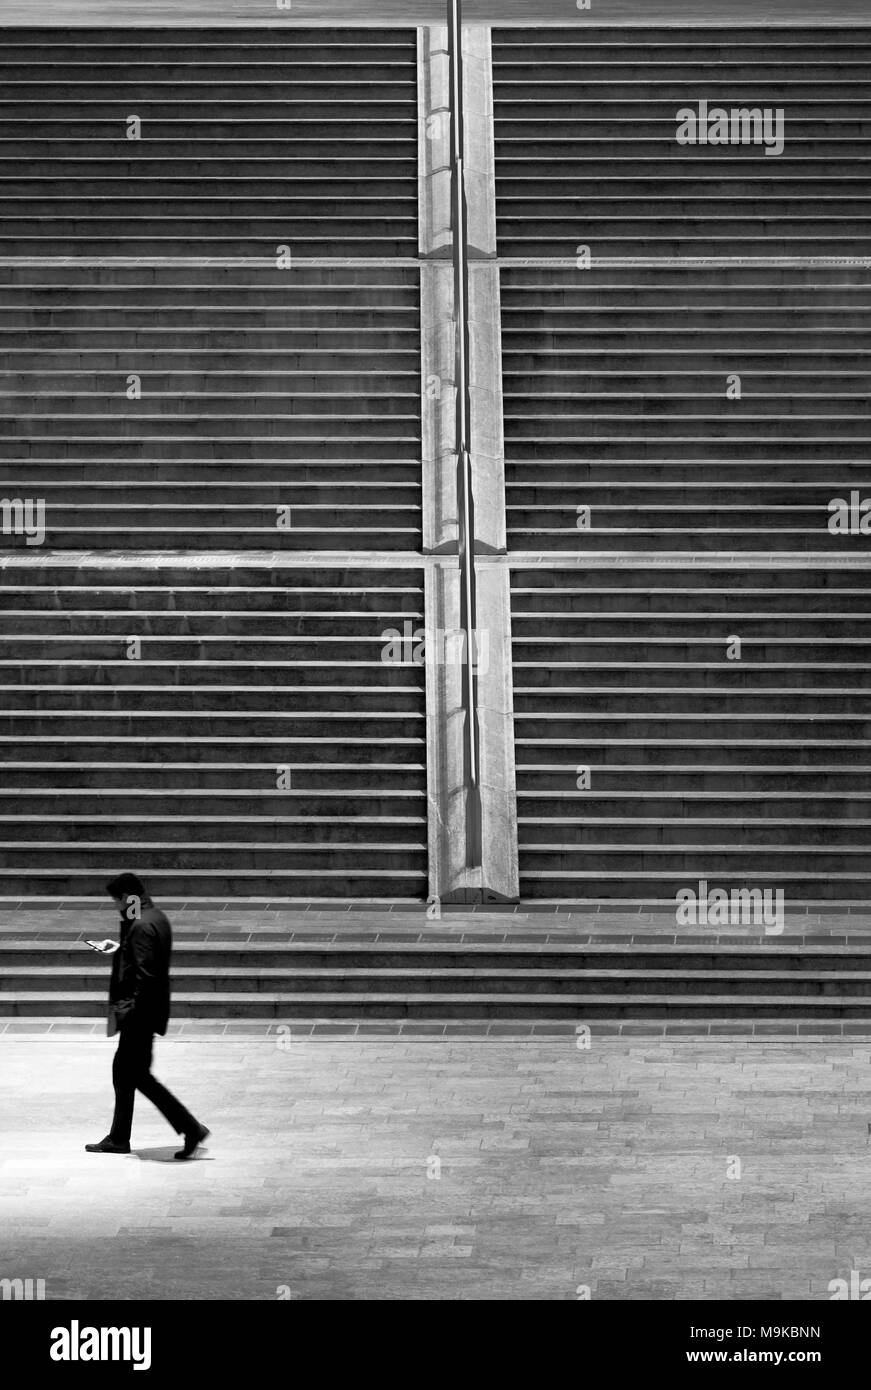 Man walking and looking at the smartphone - Stock Image